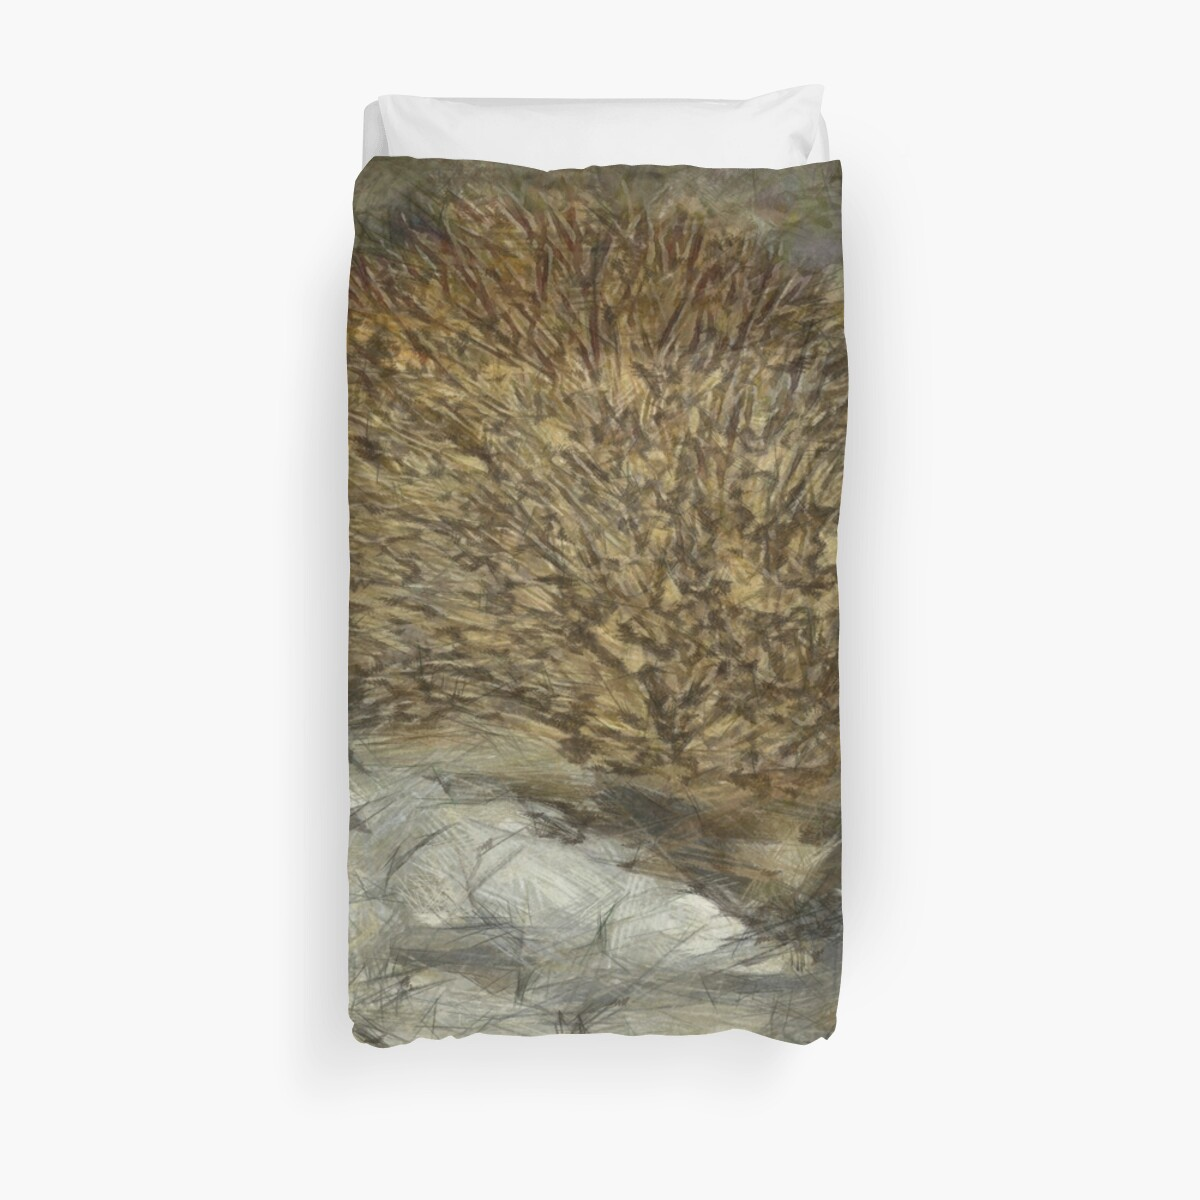 "Hedgehog"" Duvet Covers by taiche 